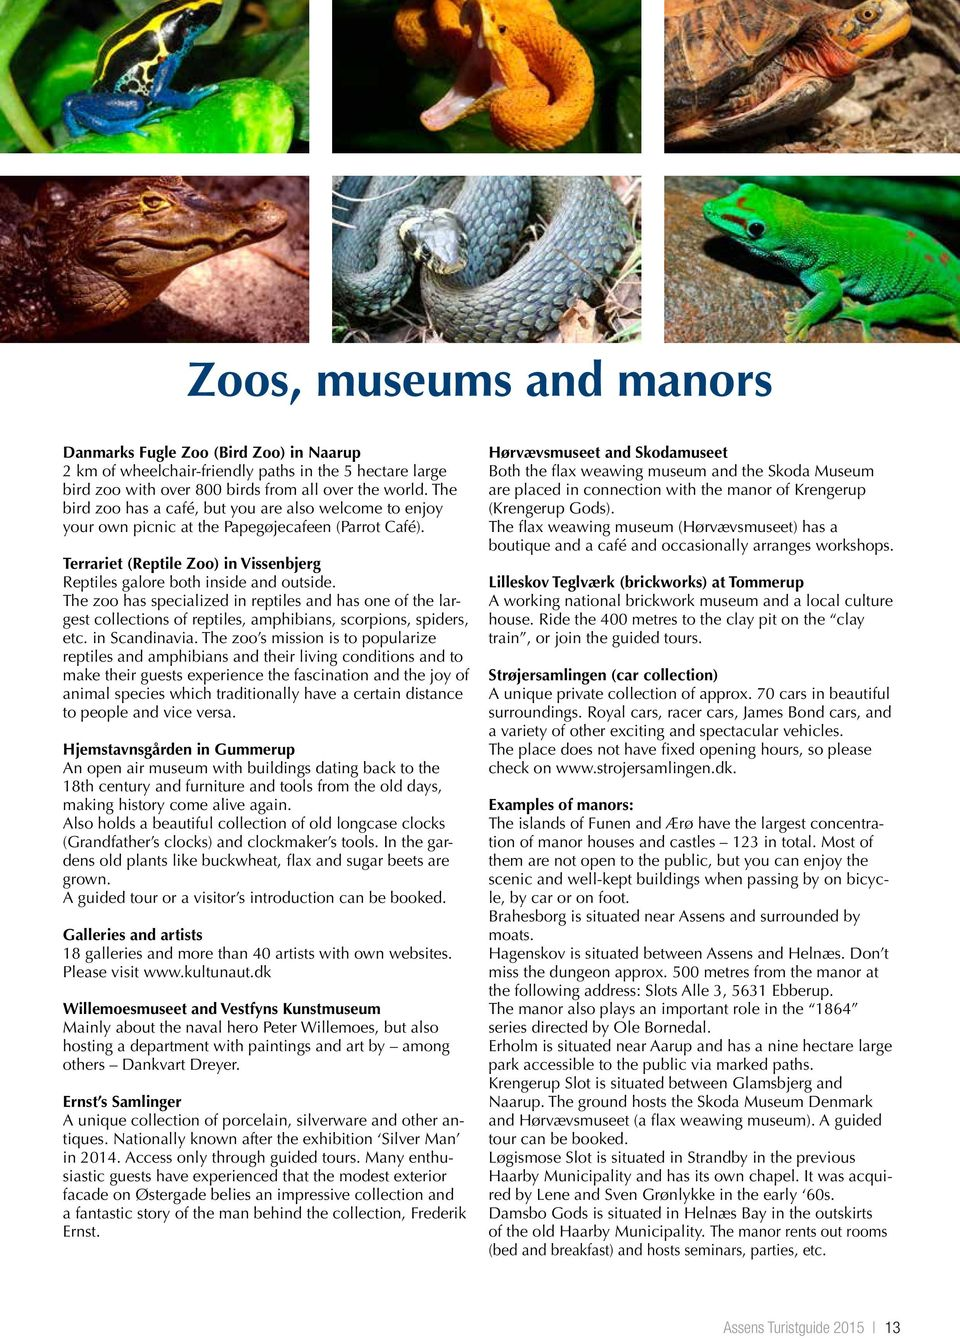 The zoo has specialized in reptiles and has one of the largest collections of reptiles, amphibians, scorpions, spiders, etc. in Scandinavia.